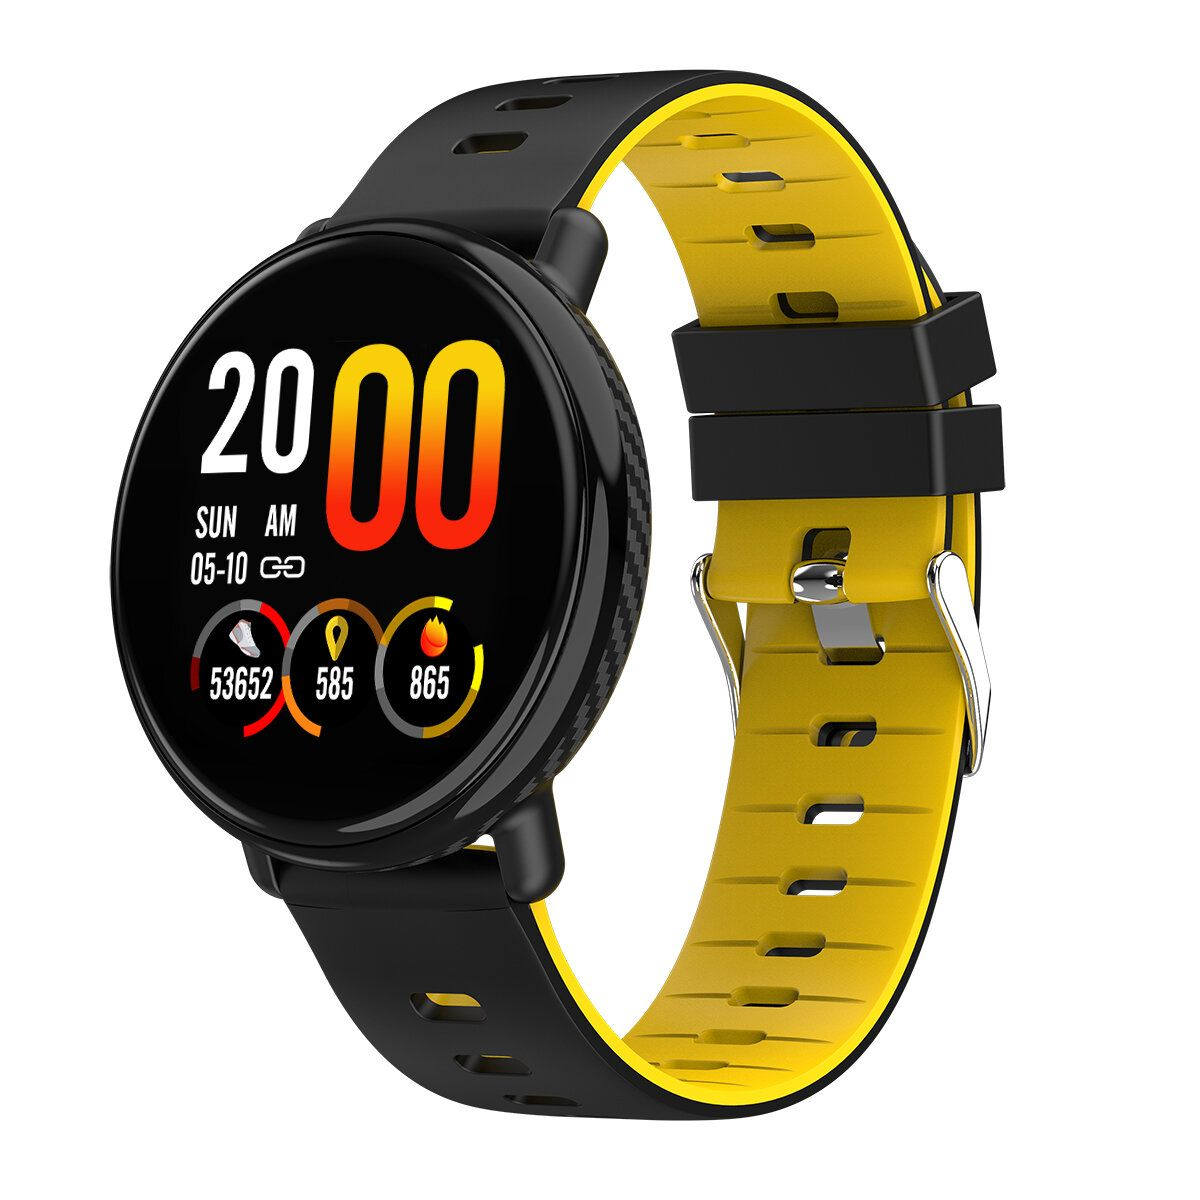 IGD US$30.28 Bakeey K1 IPS Full Touch Color Screen Wristband Multi Exercise Modes Heart Rate Monitor IP68 Smart Watch